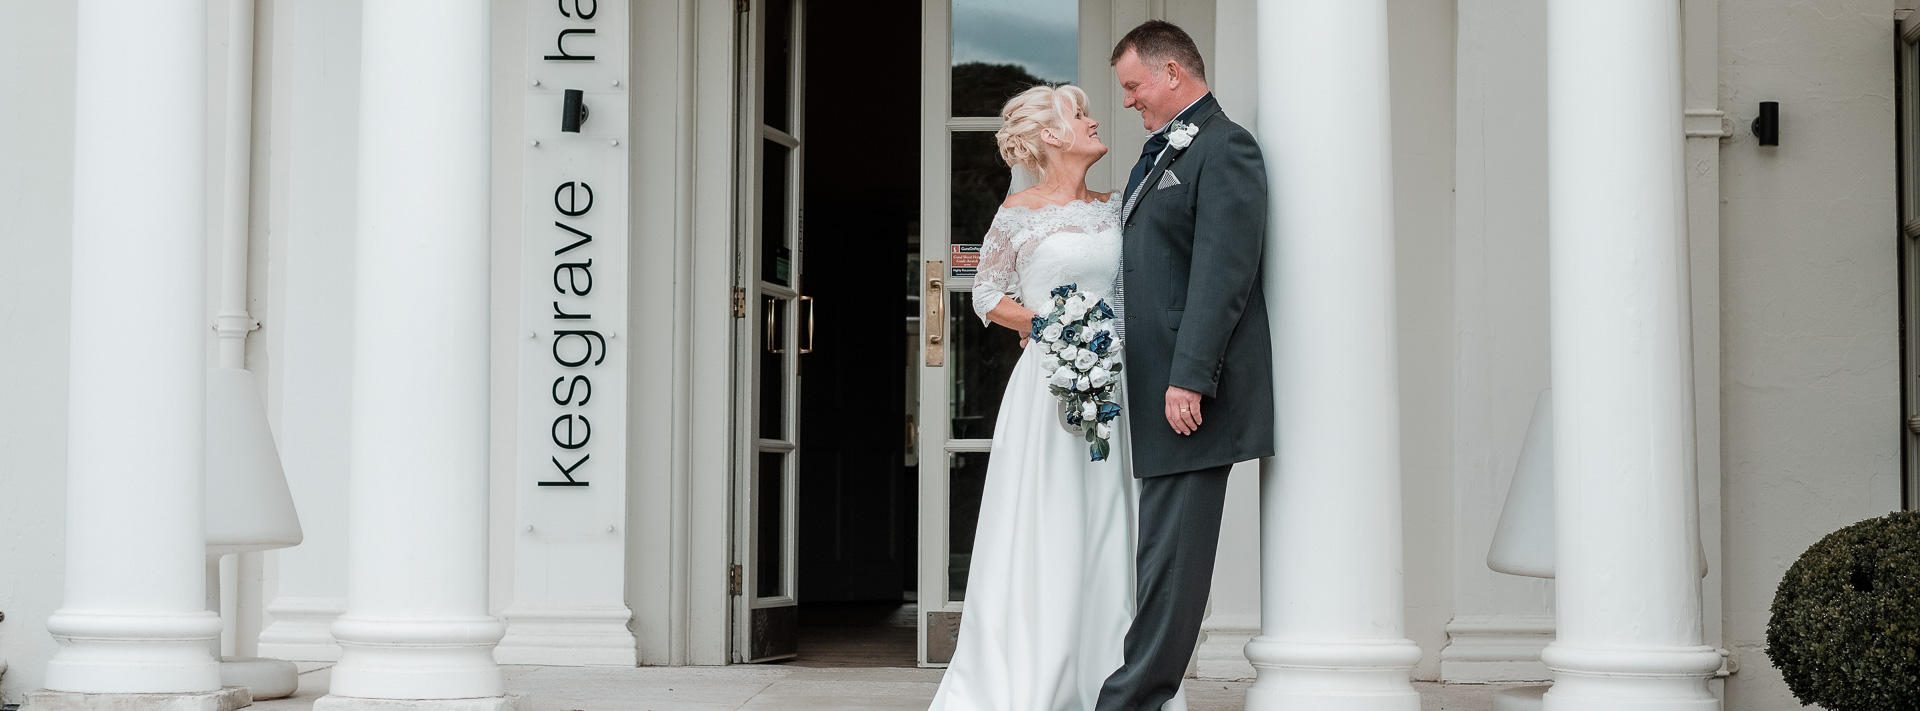 Nicky and Johns Wedding at Milsoms Kesgrave Hall